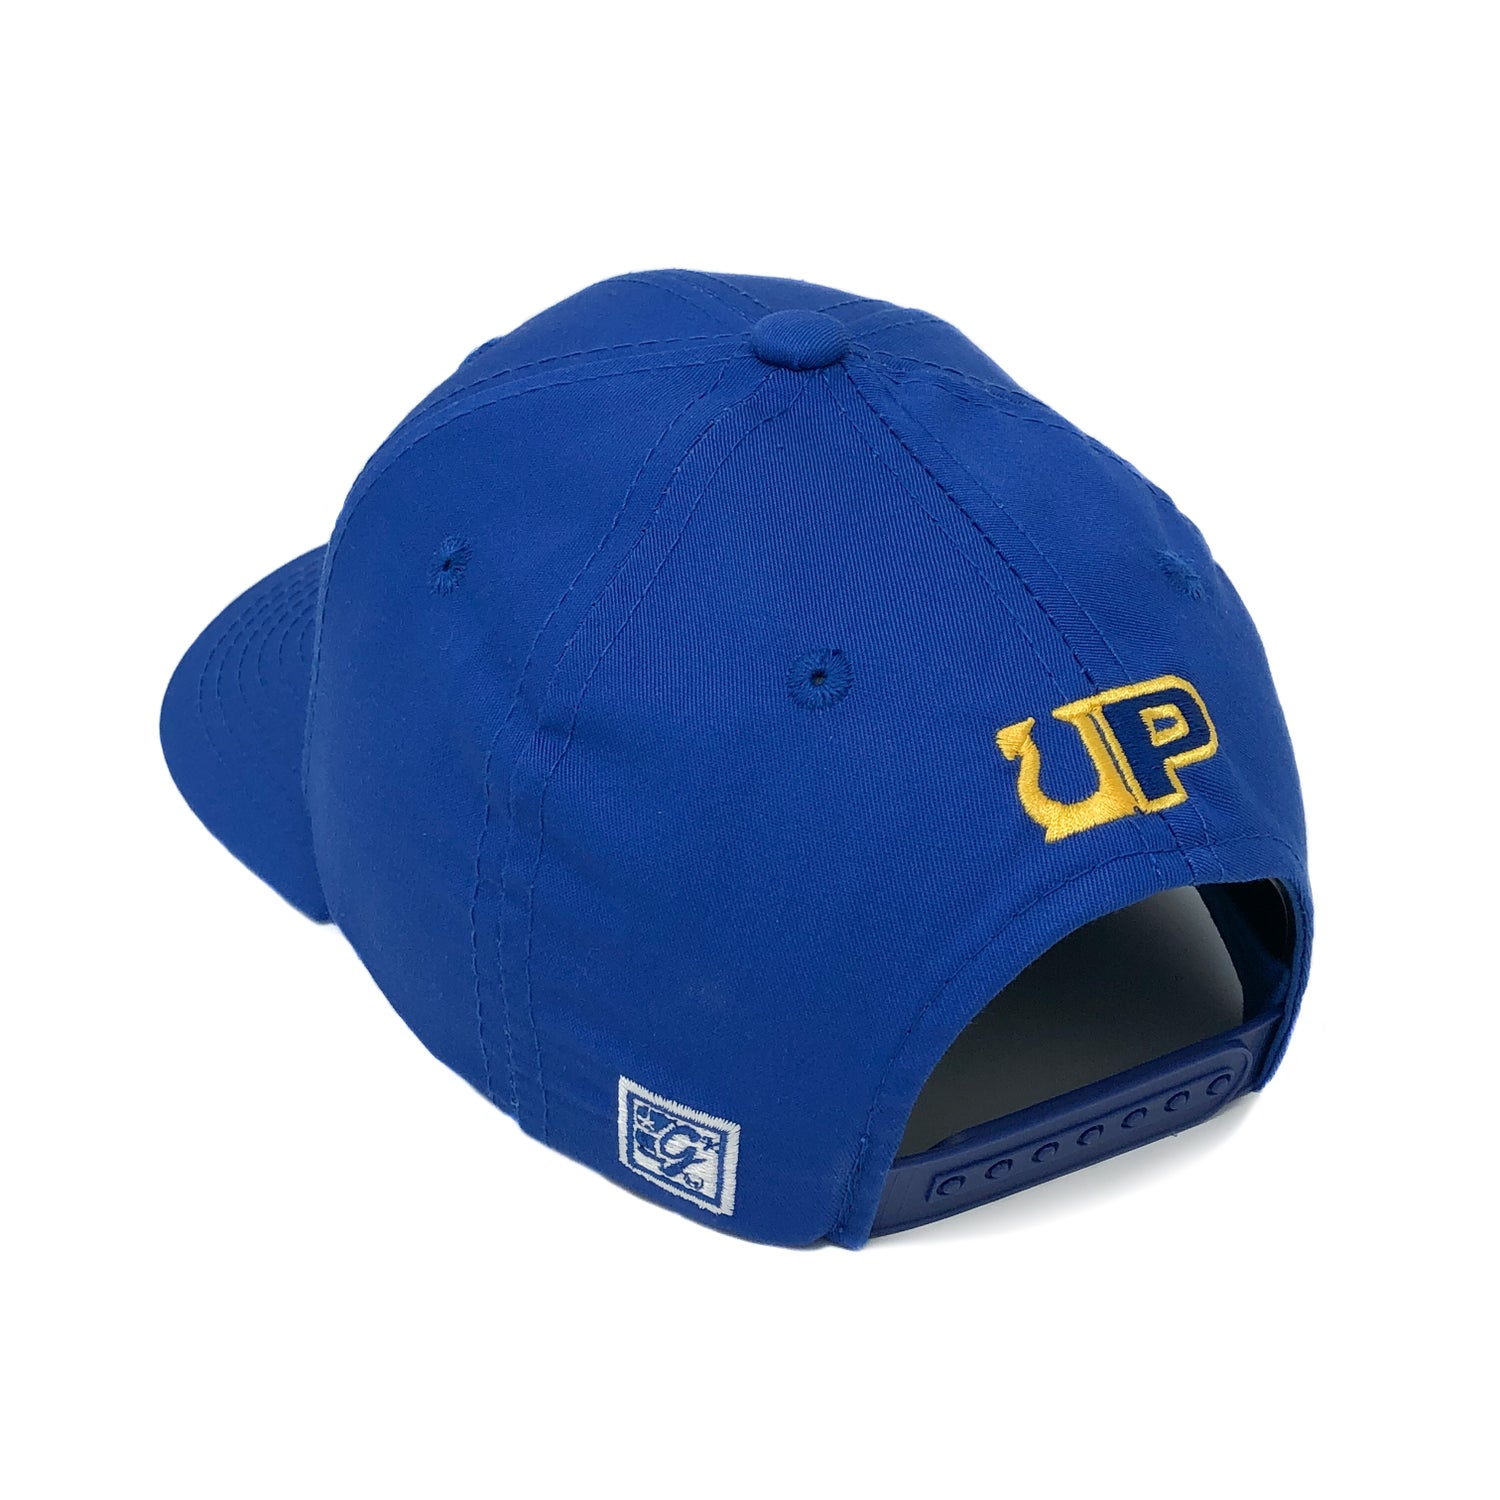 Image of UP / THE GAME HAT 07 - SURF - Royal/Gold